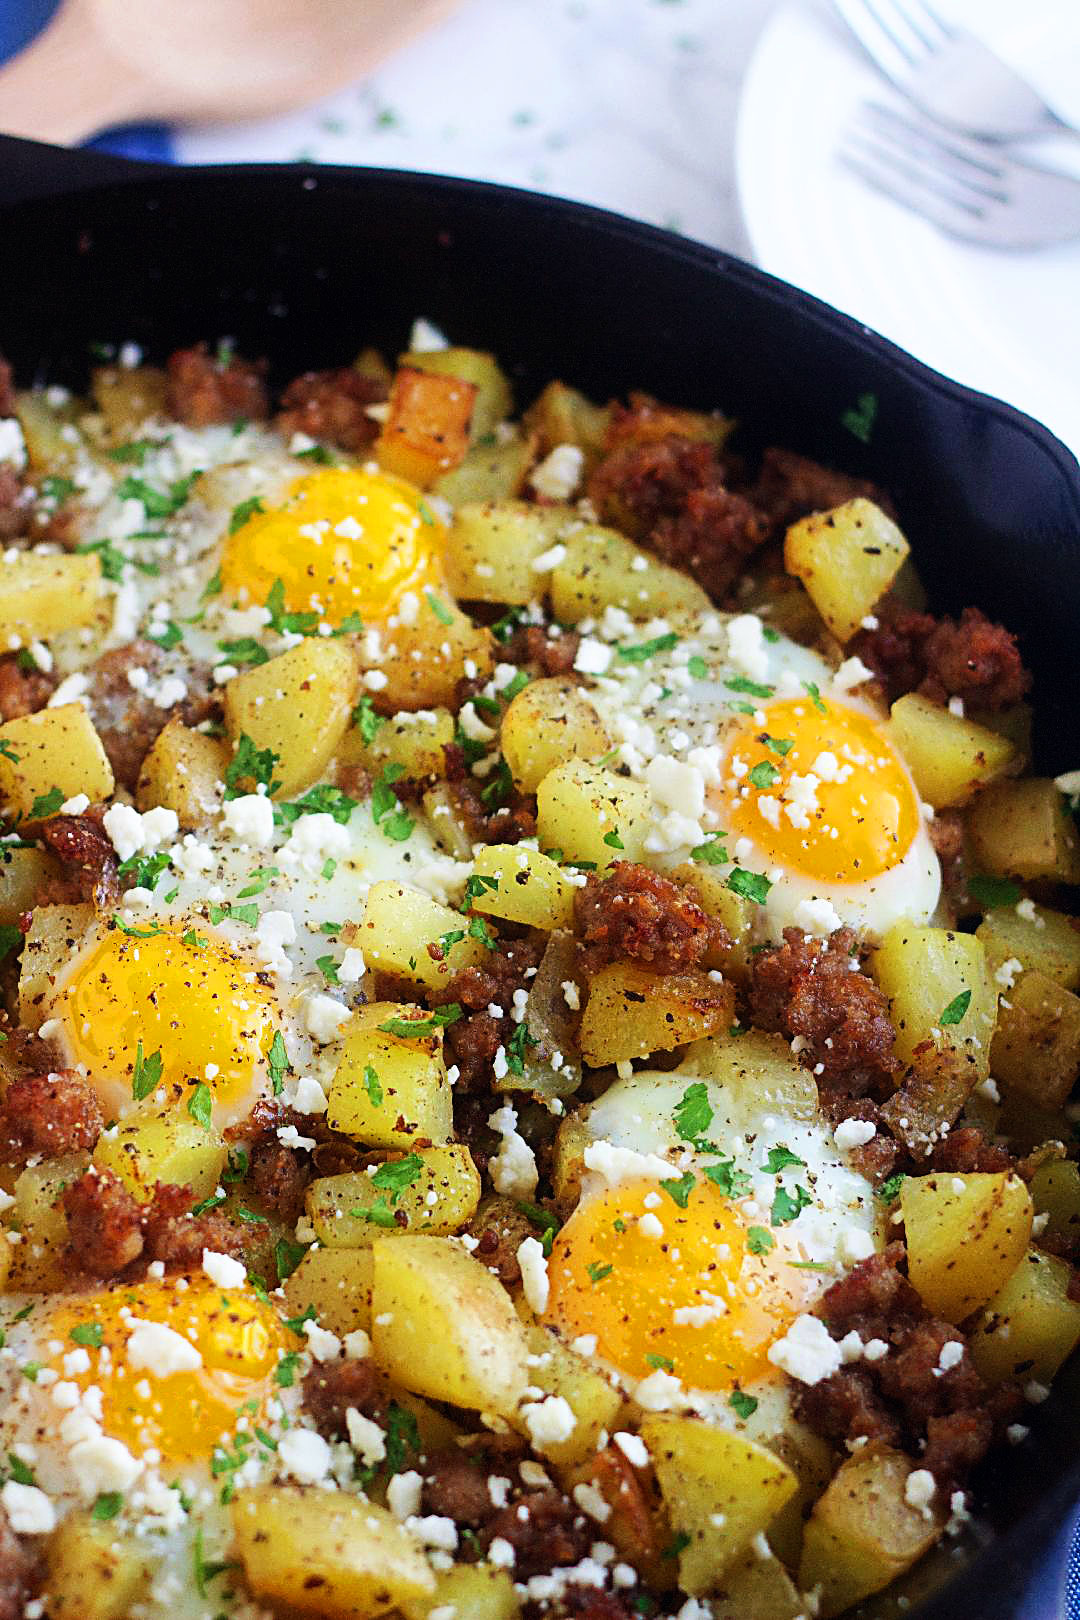 This breakfast hash is filled with sausage, egg and feta cheese. Life-in-the-Lofthouse.com